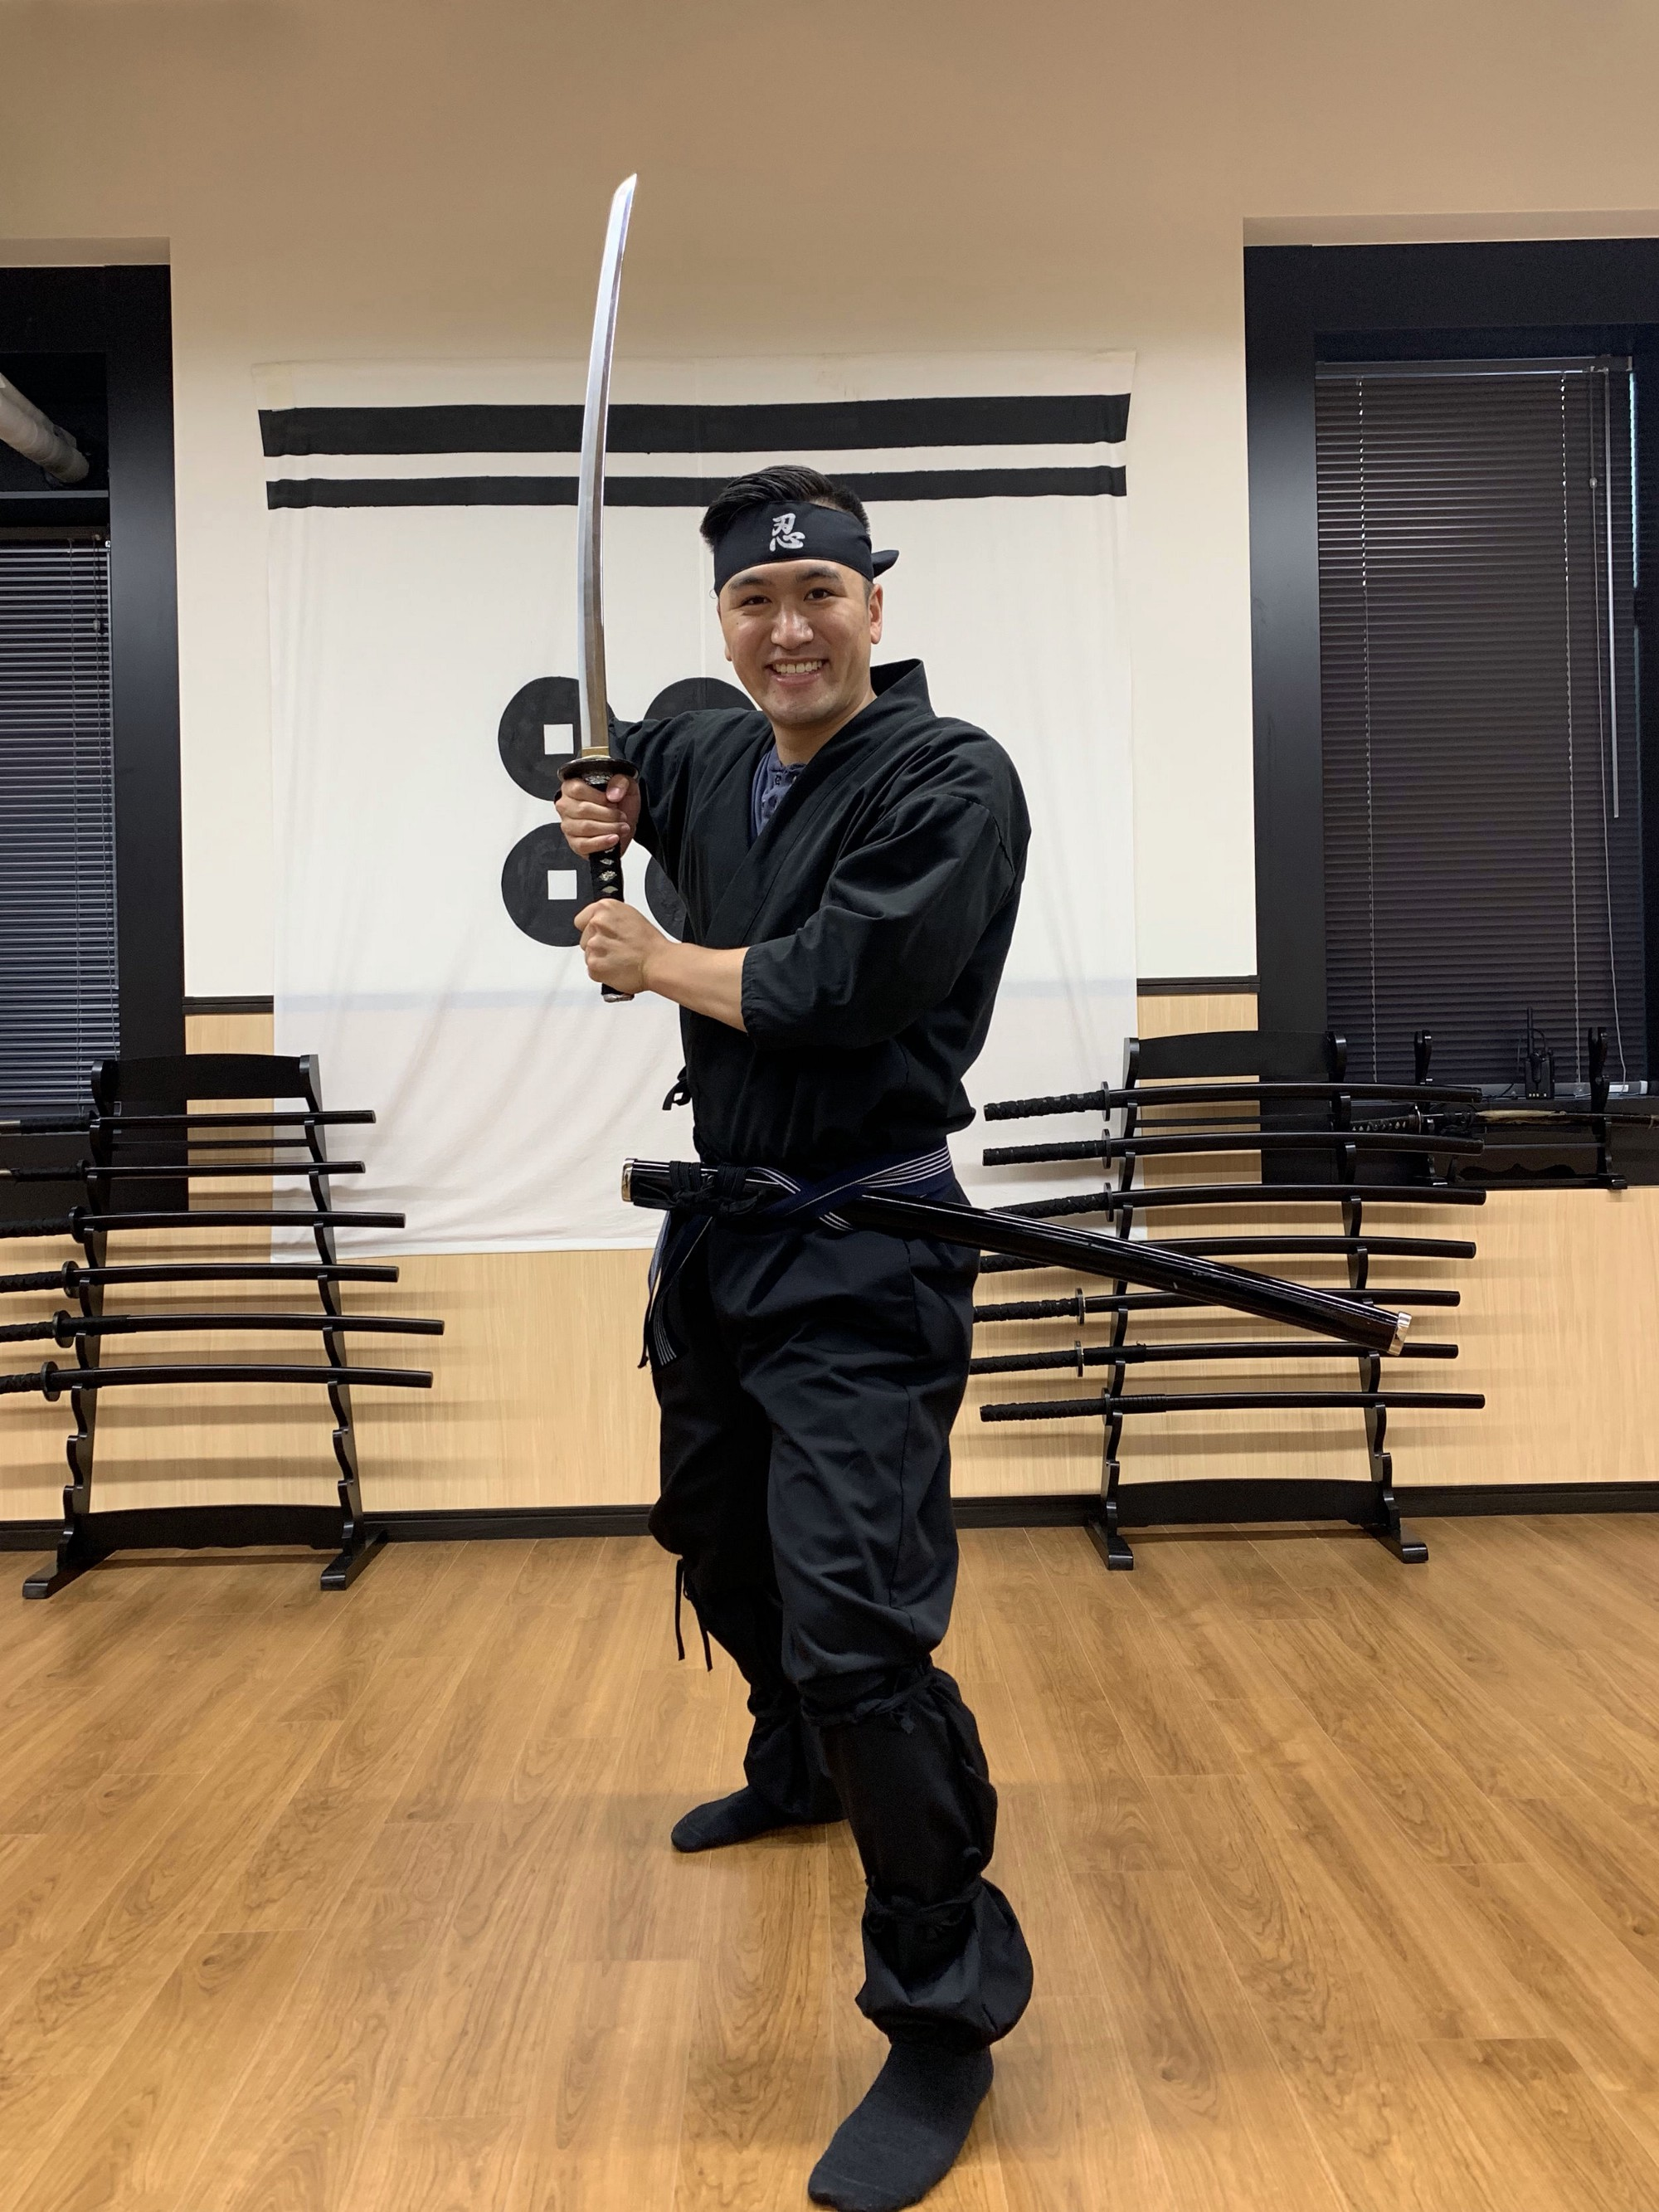 Ryan Chaw striking a pose with his katana sword.